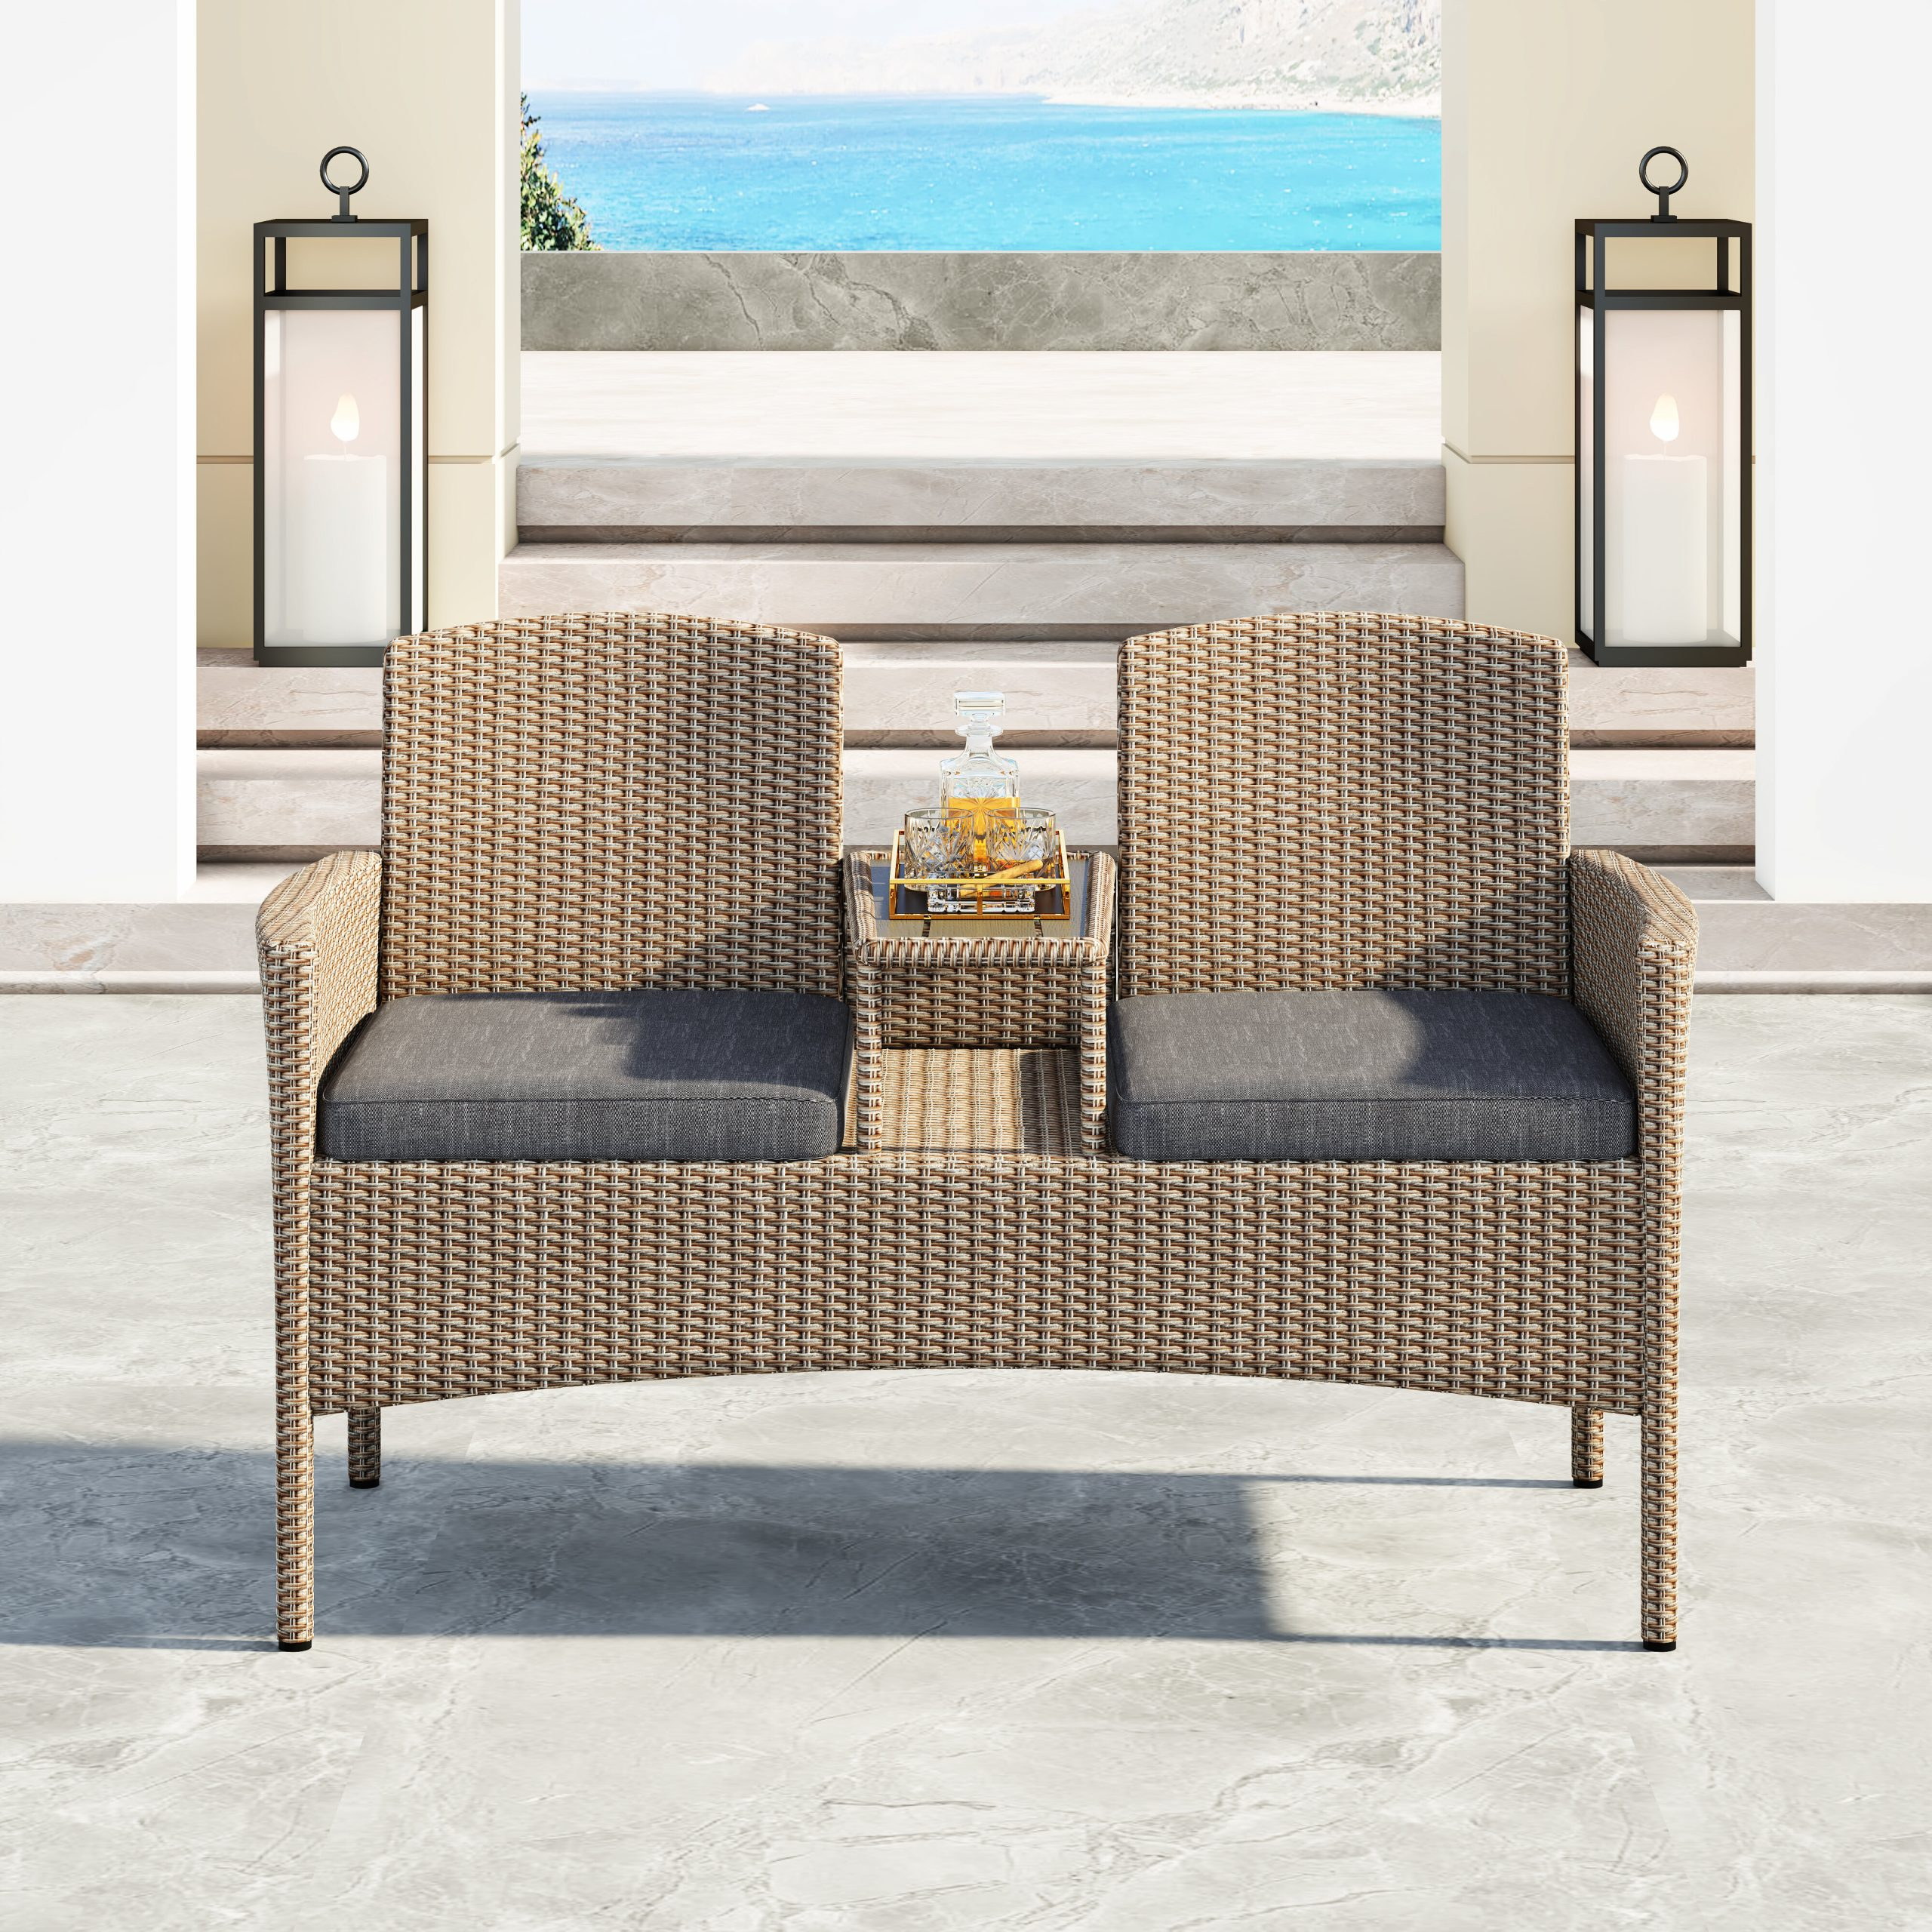 Featured Image of Wicker Tete A Tete Benches